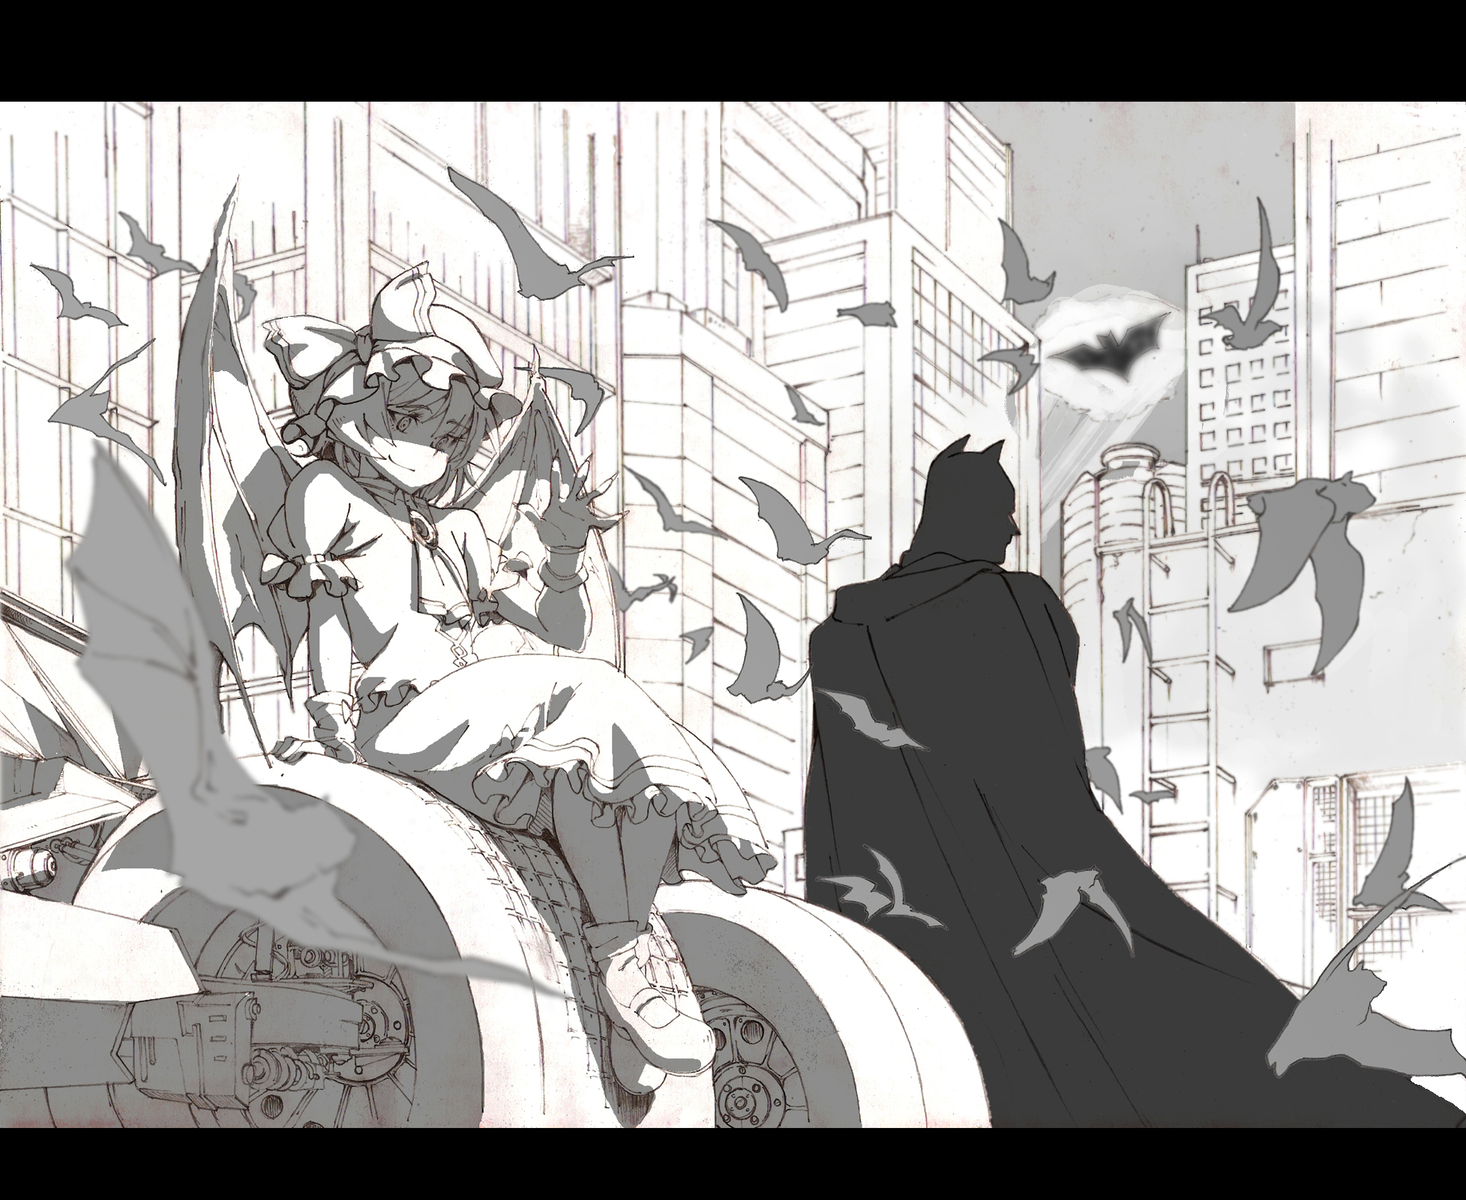 animal bat batman batman_(series) crossover hat monochrome mtmy remilia_scarlet touhou vampire wings